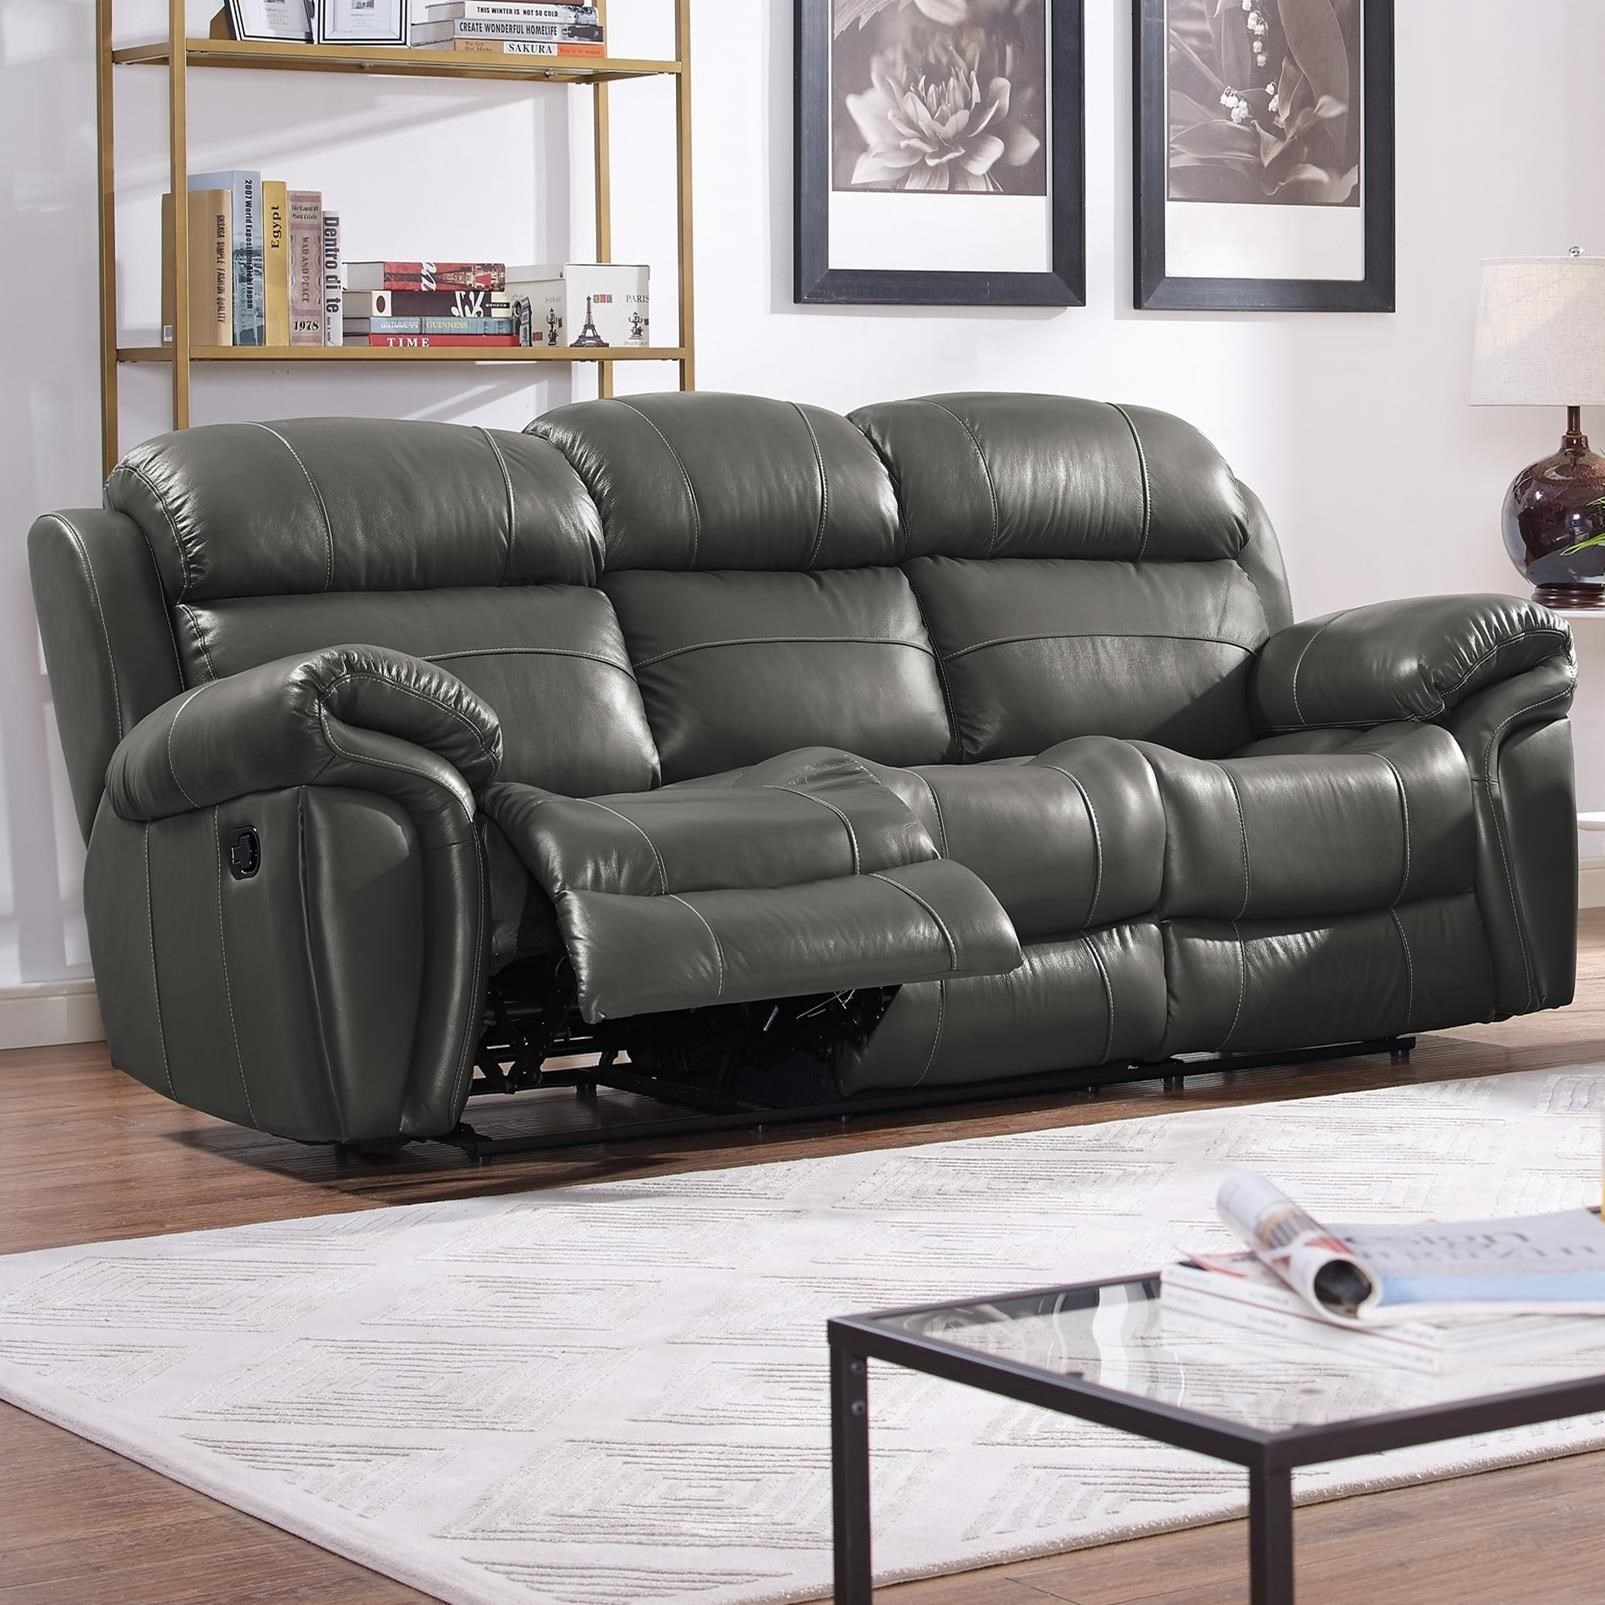 Superieur New Classic Paloma Casual Power Reclining Sofa With Drop Down Tray